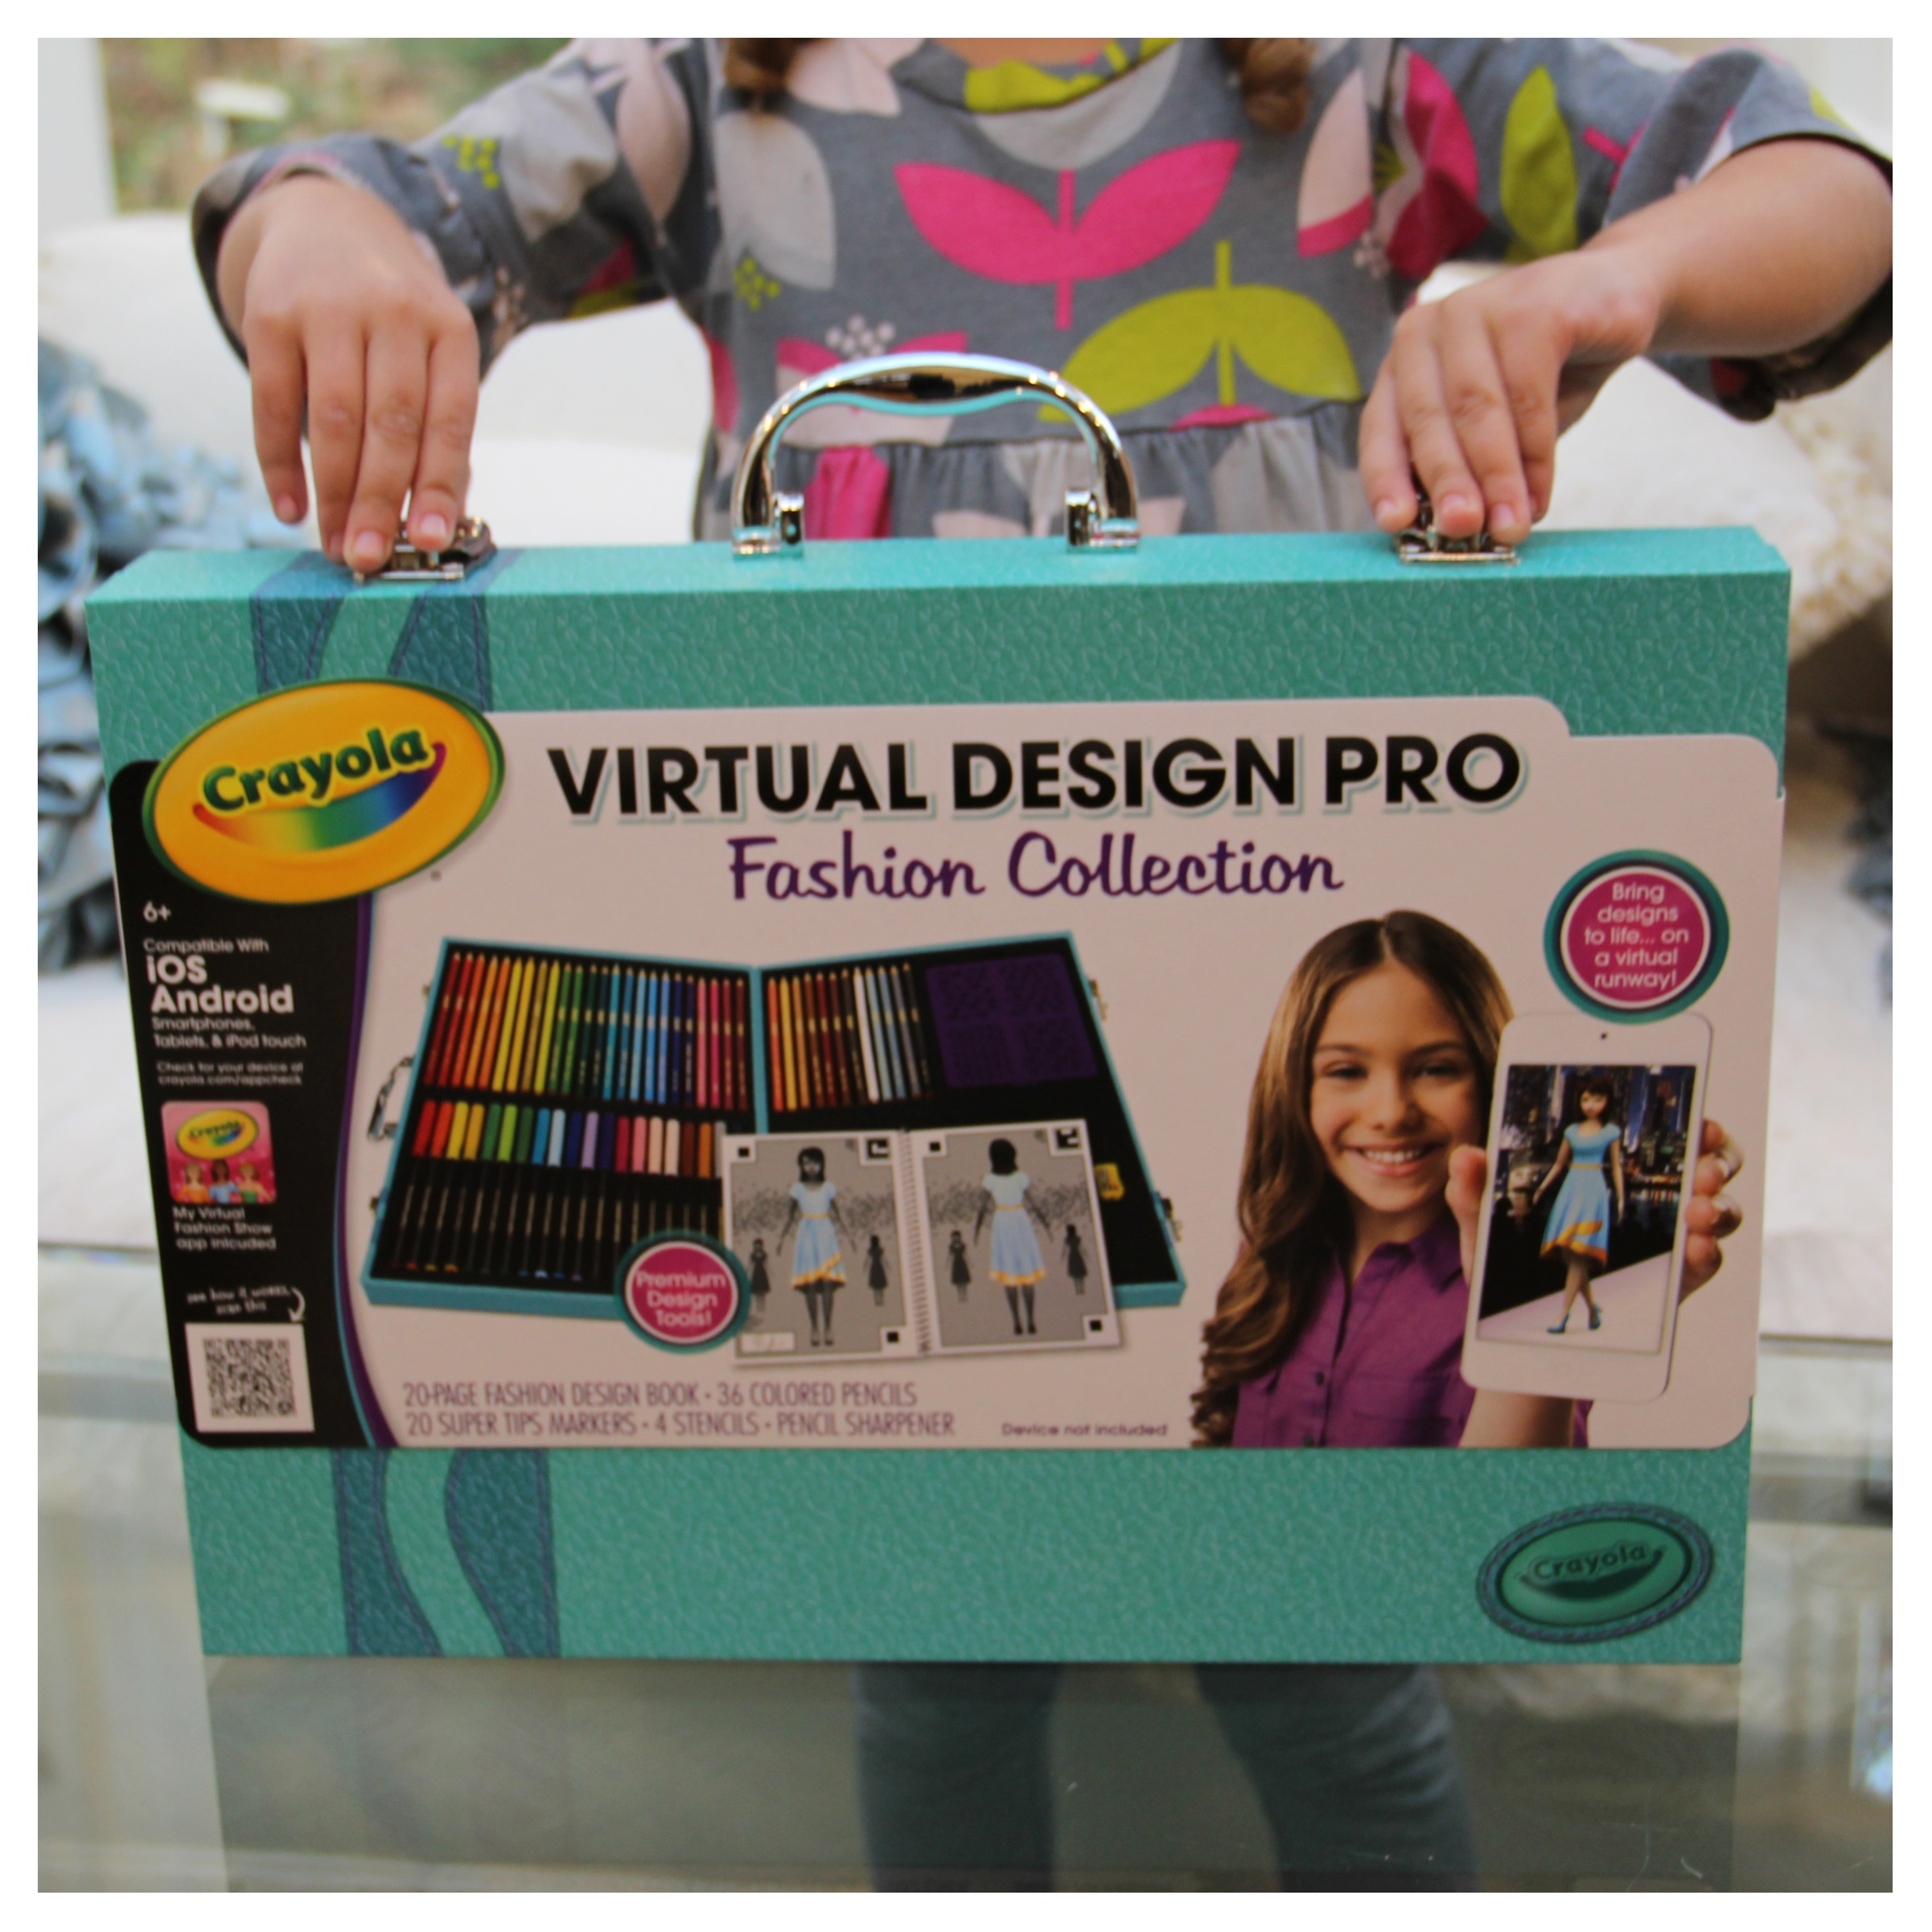 Toys that travel crayola virtual design pro review and Crayola fashion design studio reviews